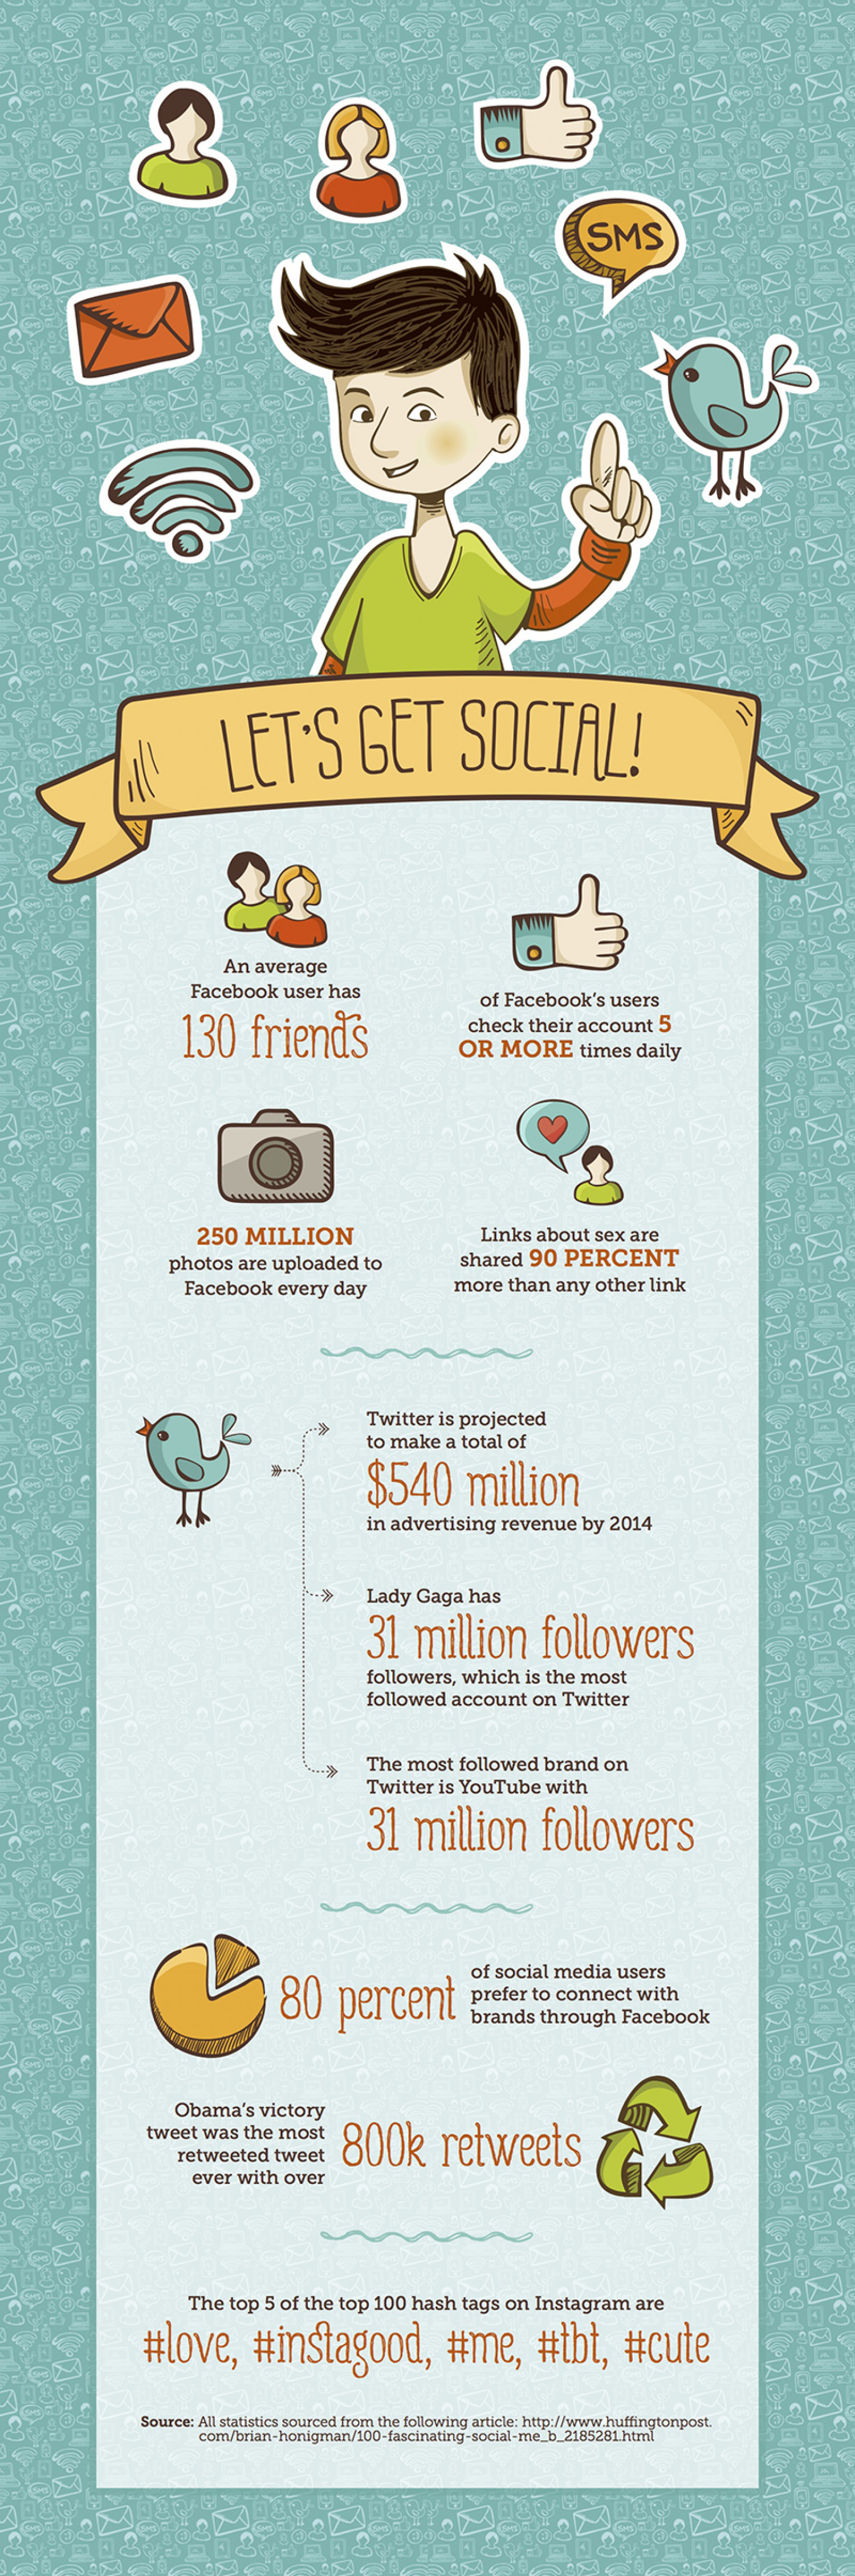 Let's Get Social! Infographic